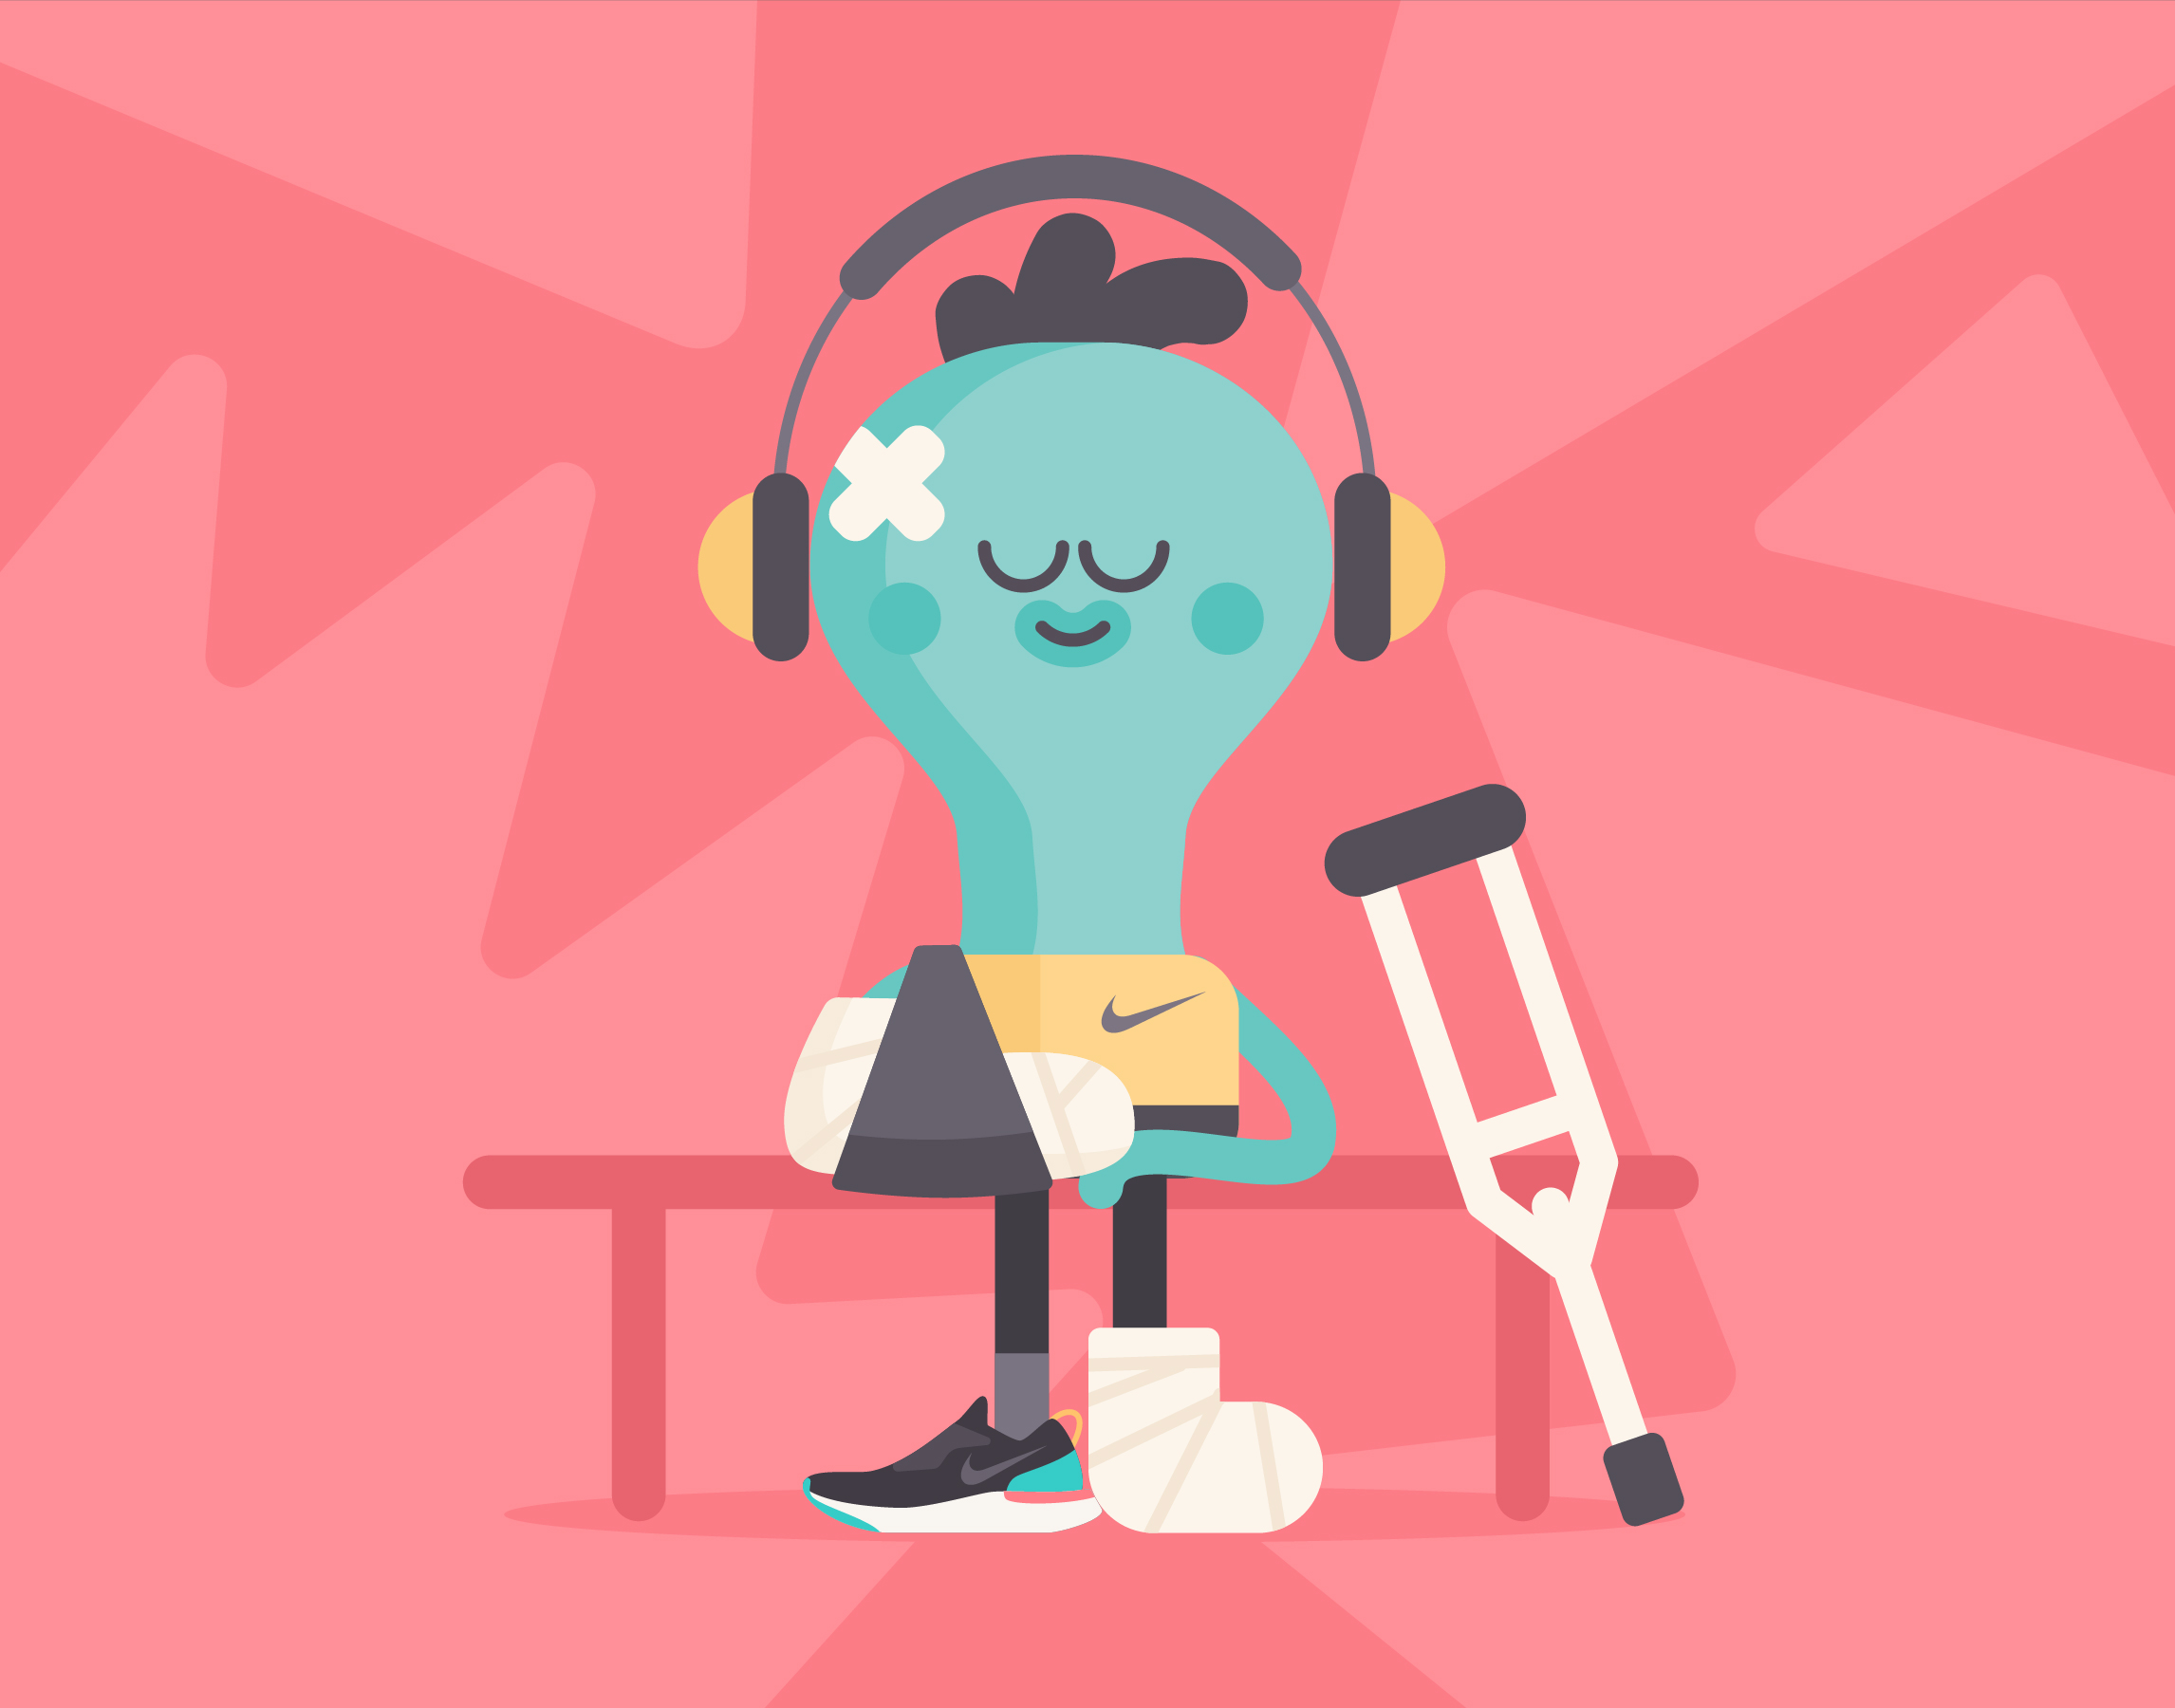 How mindfulness can help. Hurt clipart injured athlete